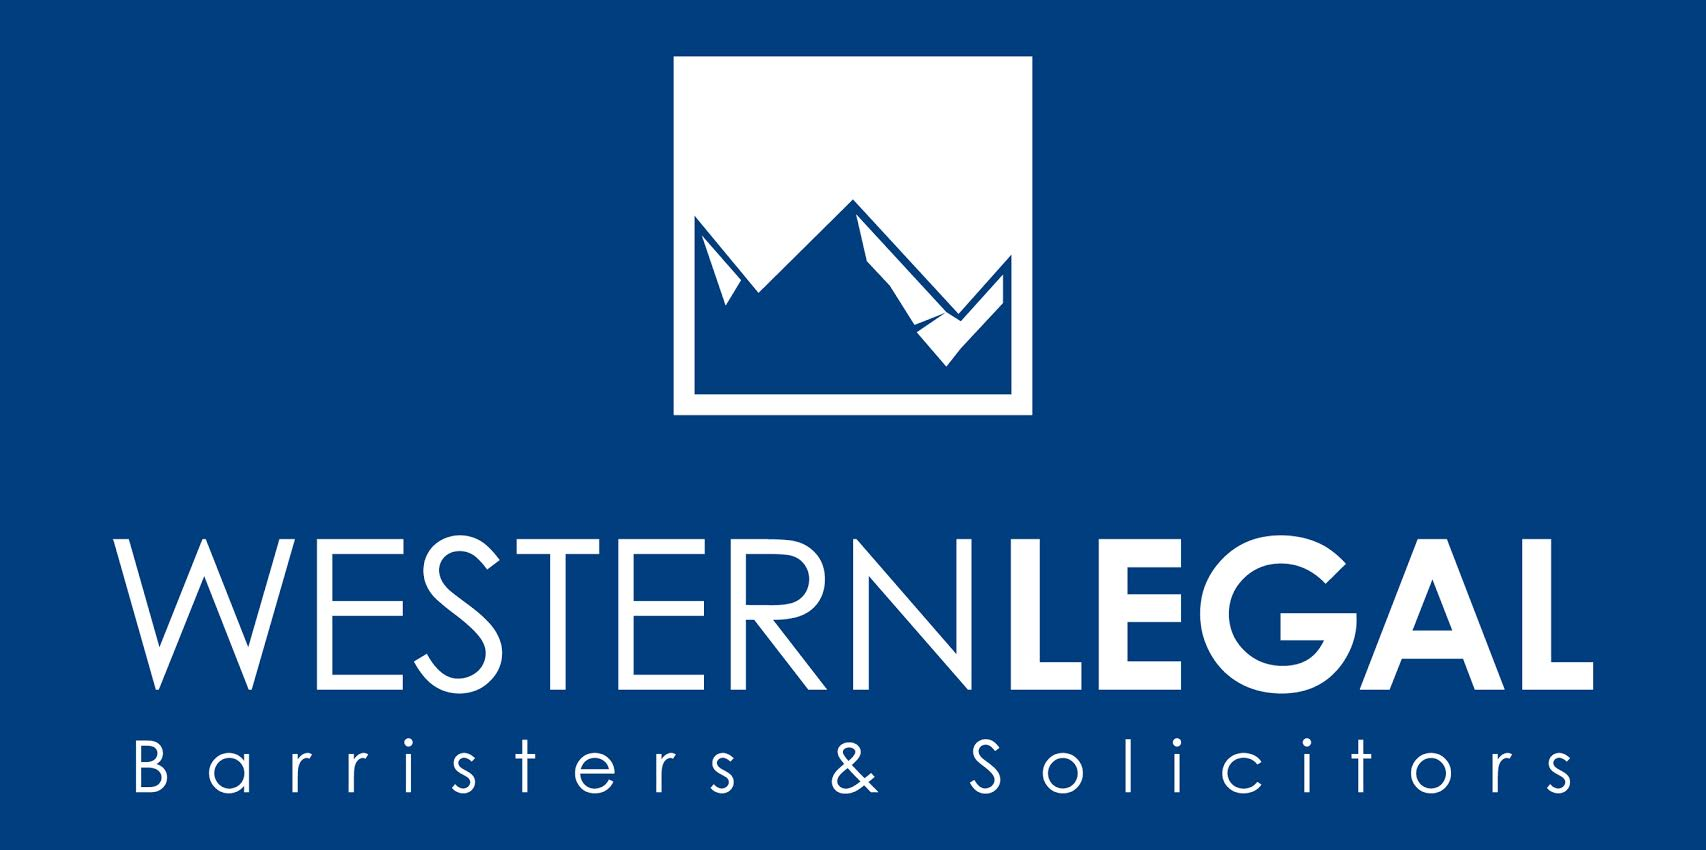 Western Legal Barristers & Solicitors